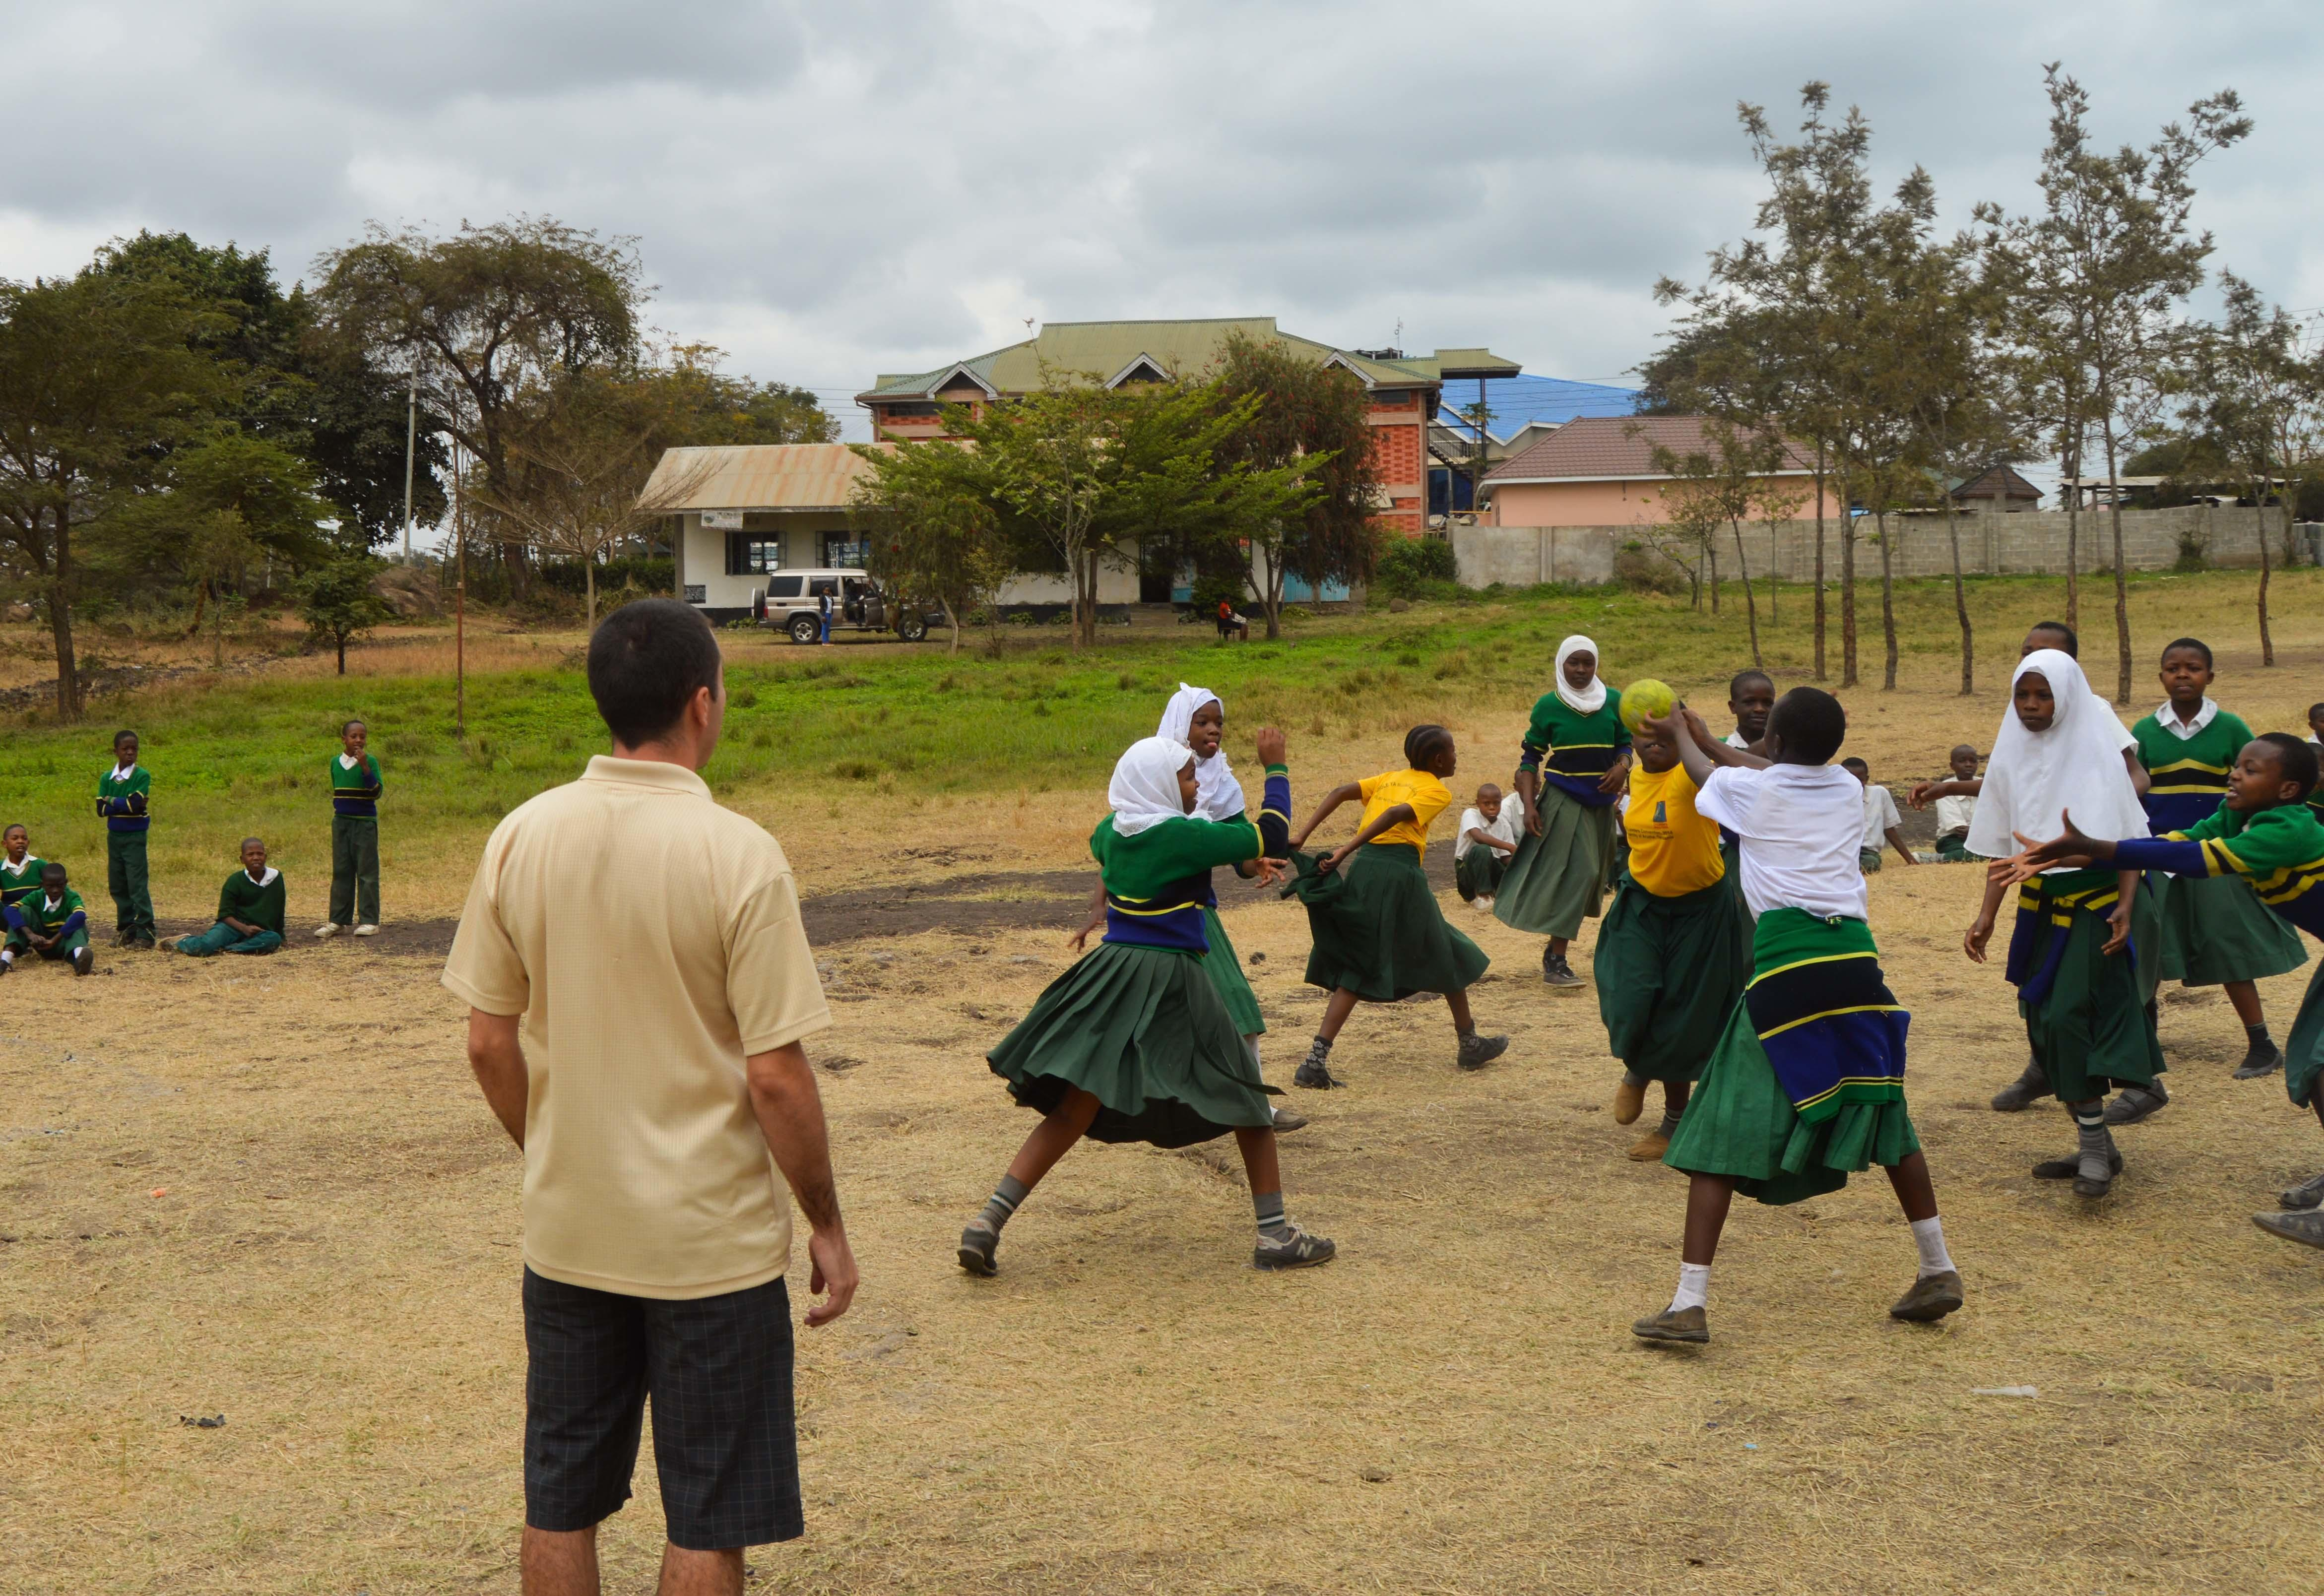 A Projects Abroad volunteer coaches sports in schools in Tanzania